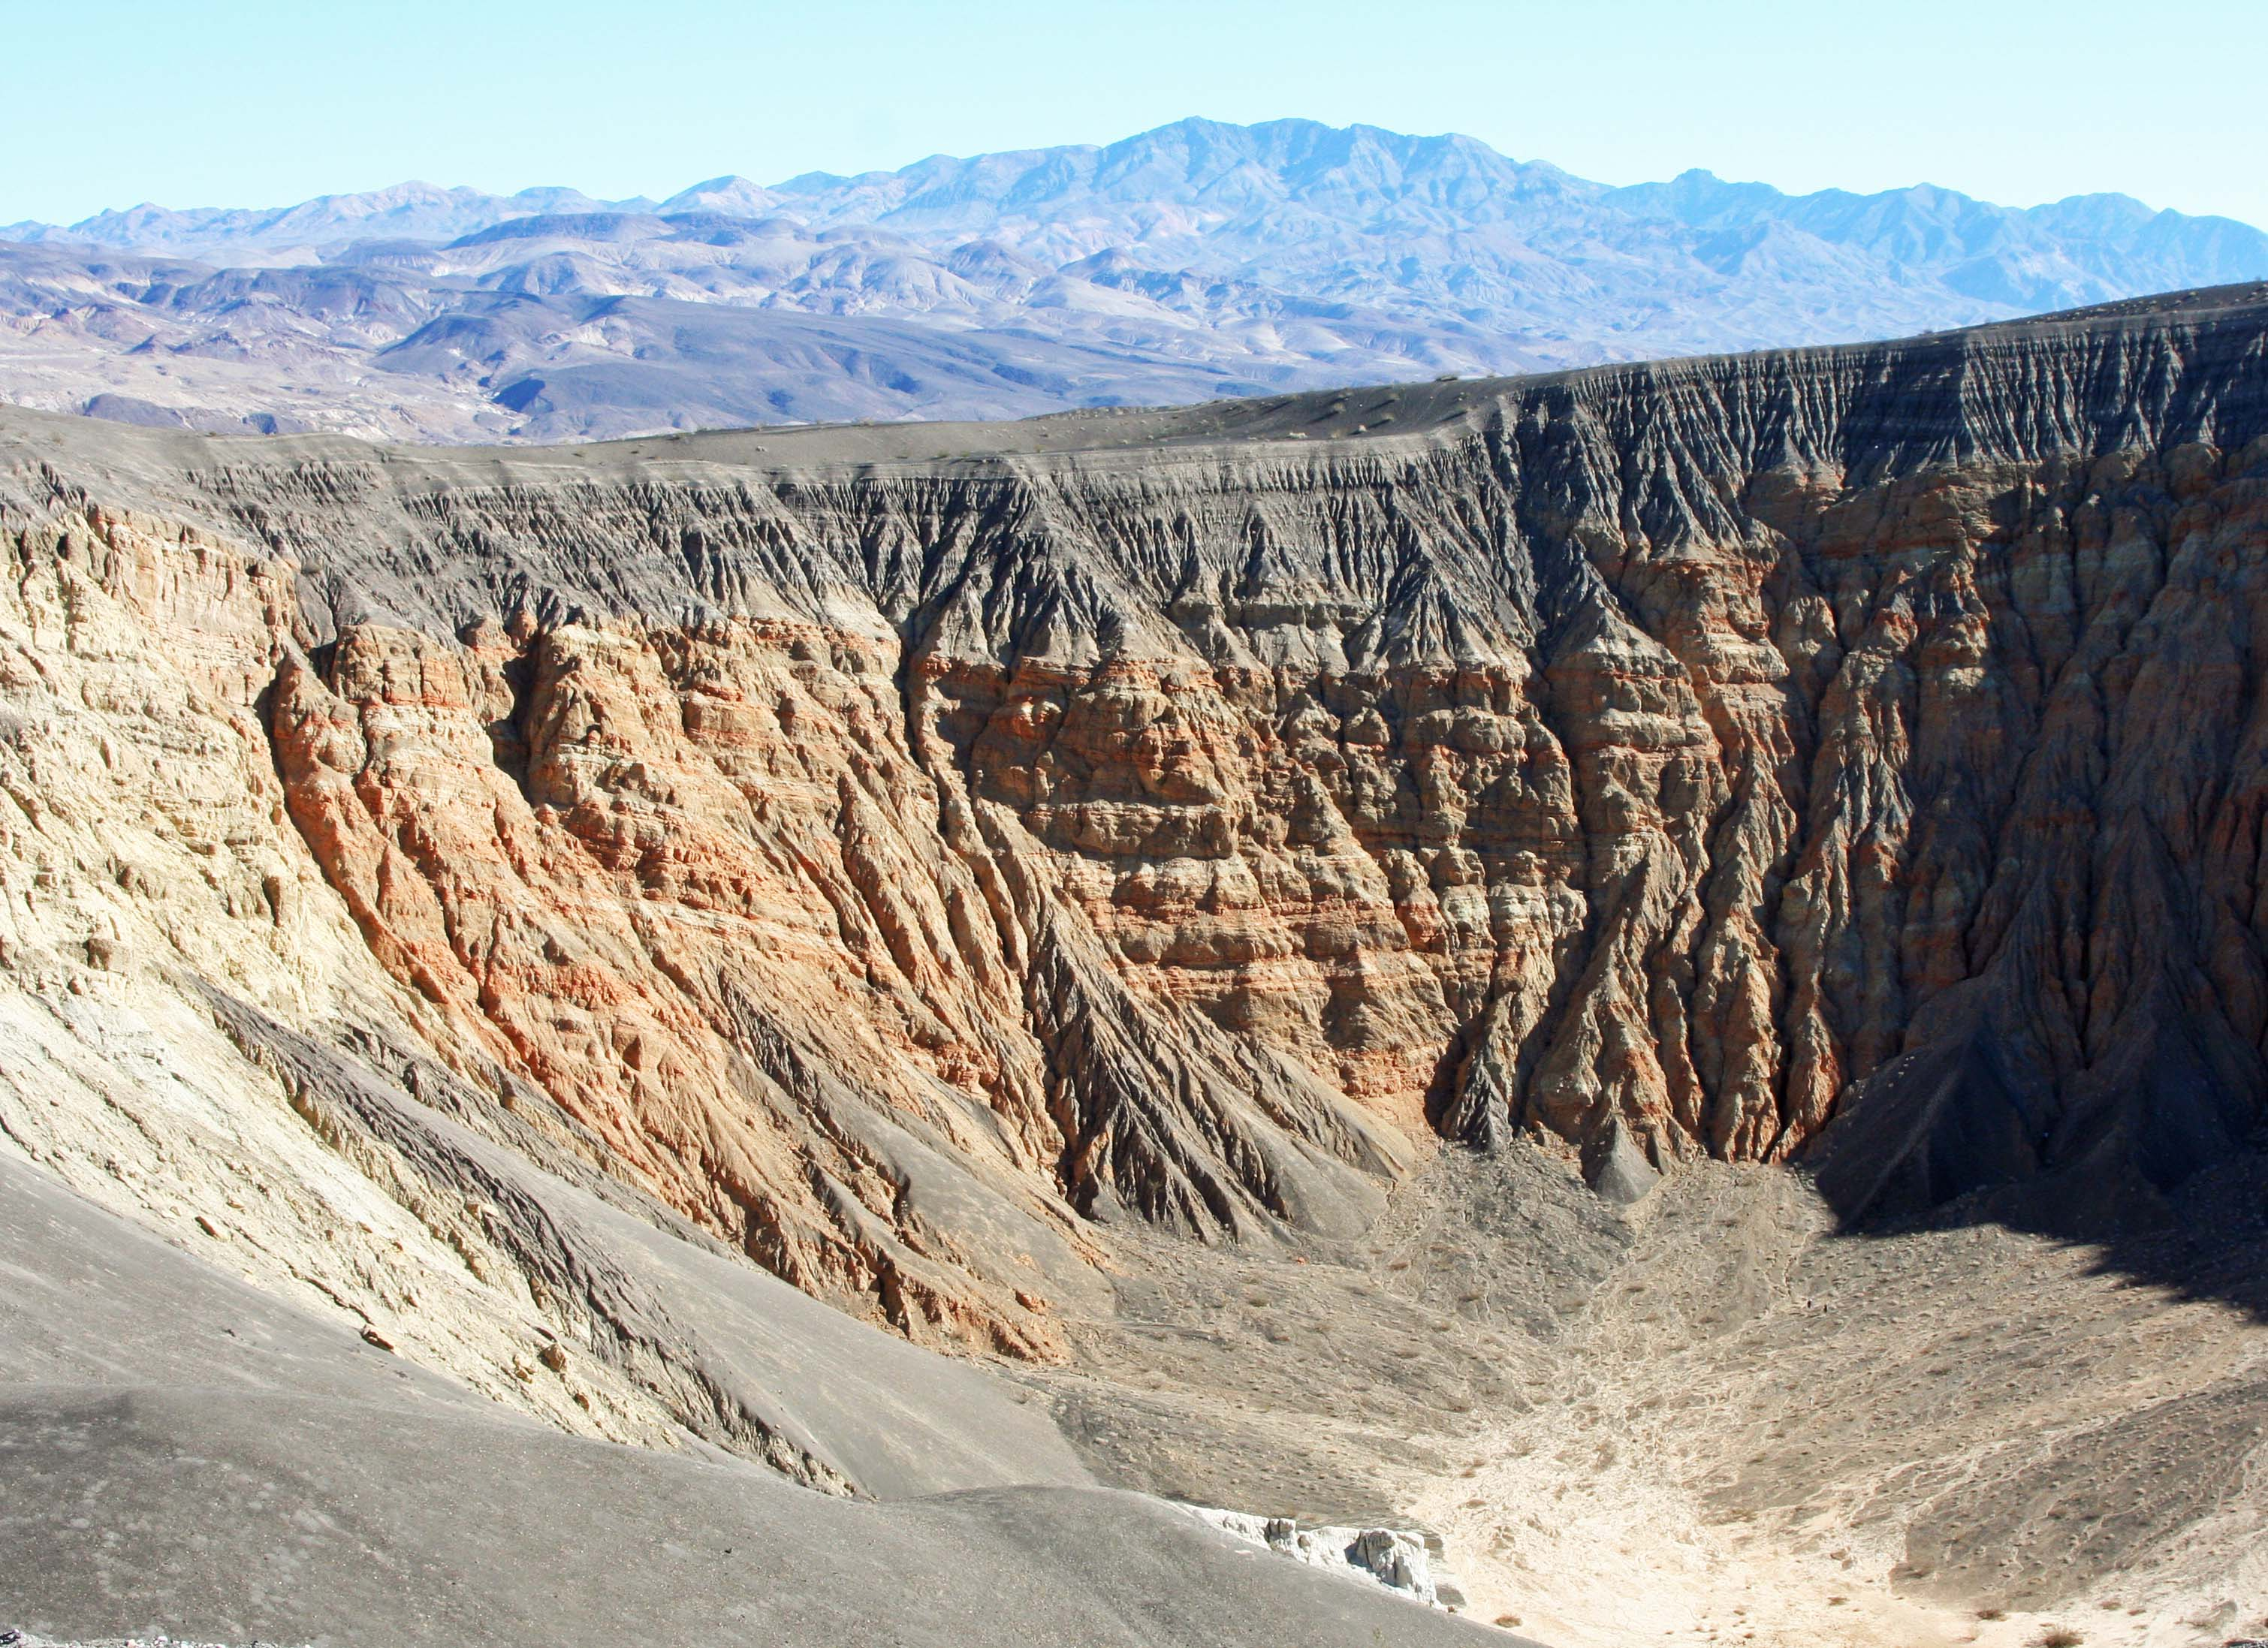 Traveling north, we come to Ubehebe Volcanic Crater, another of Death Valley's geological wonders. (Photo by Peggy Mekemson.)